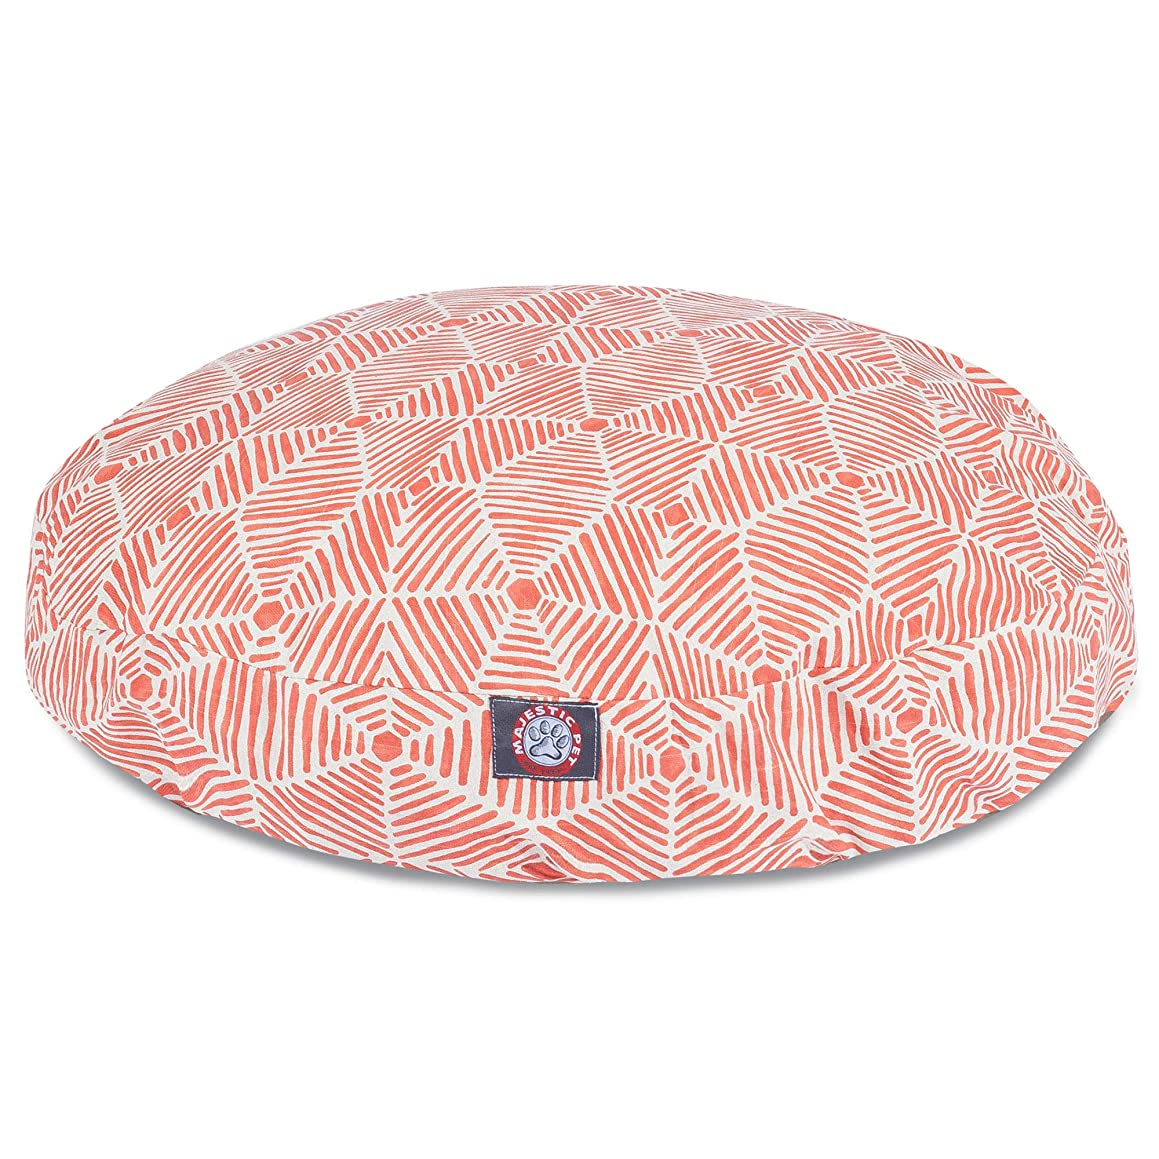 Majestic Pet Charlie Salmon Large Round Pet Bed